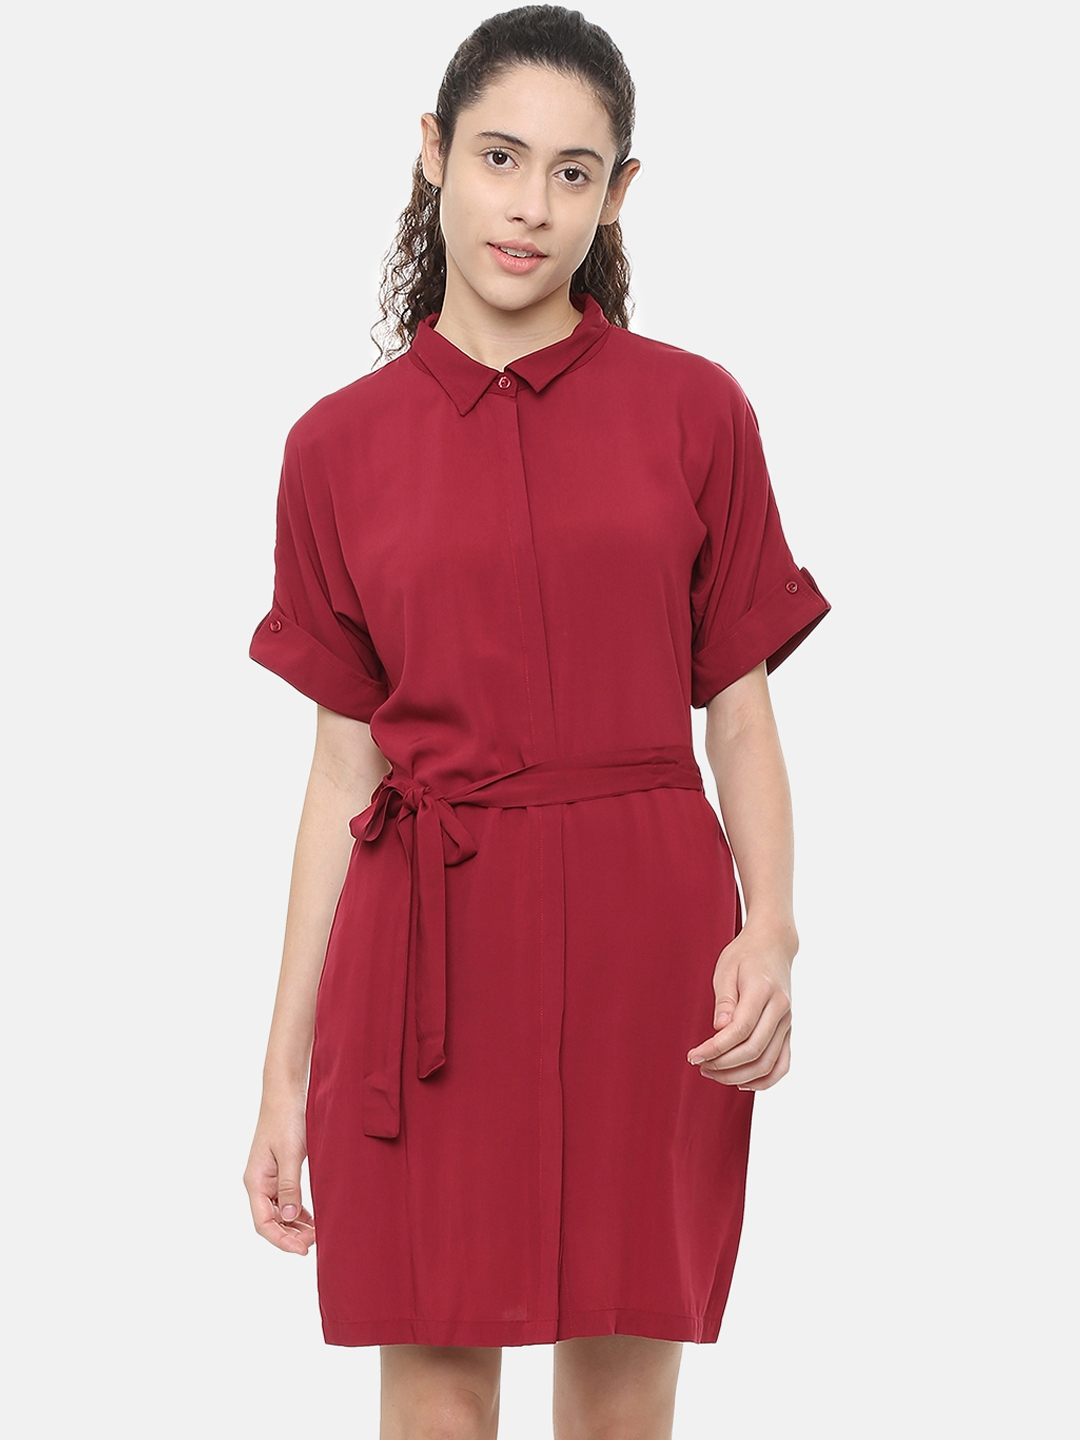 Allen Solly Woman Maroon Solid Shirt Dress